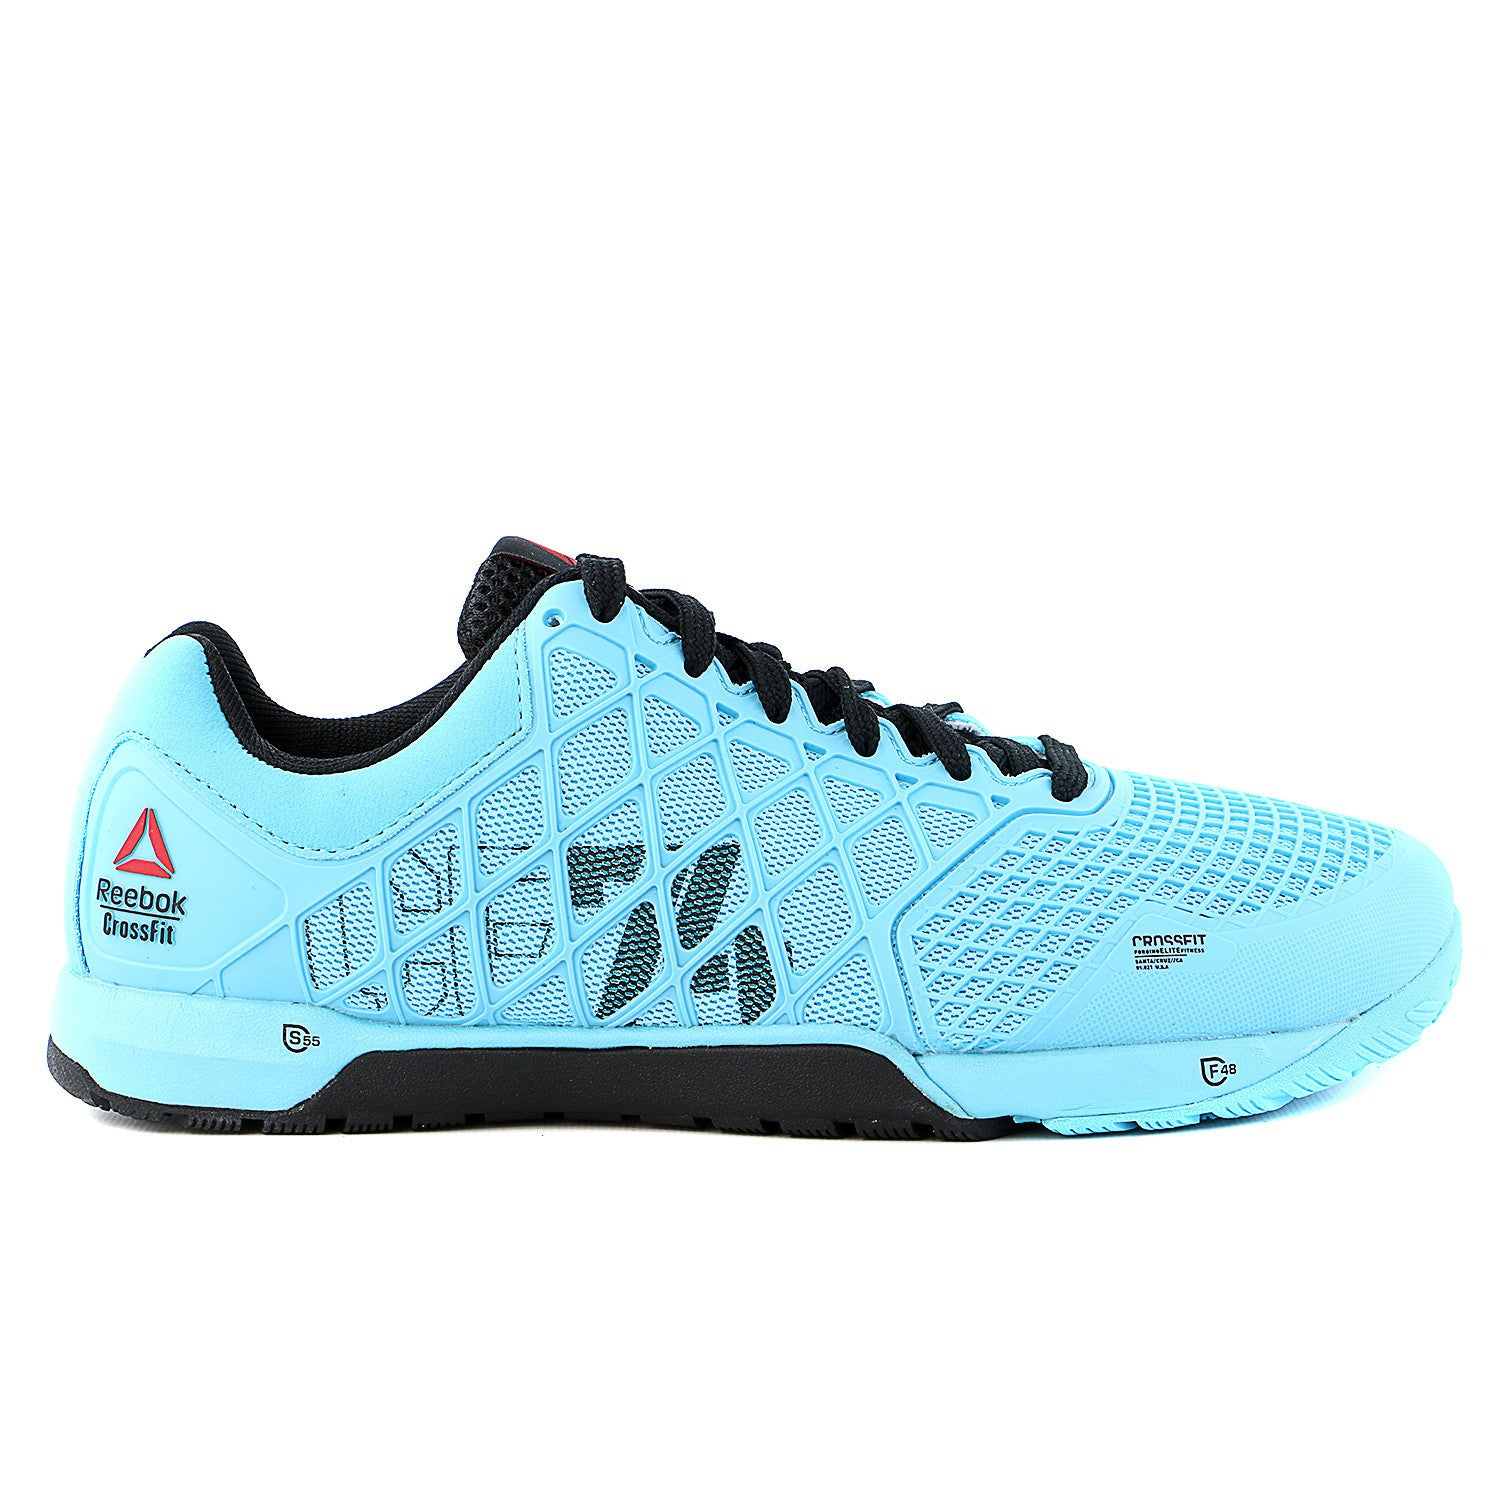 255b4b0c04dc Reebok CrossFit Nano 4.0 - Neon Blue   Black - Mens - Shoplifestyle